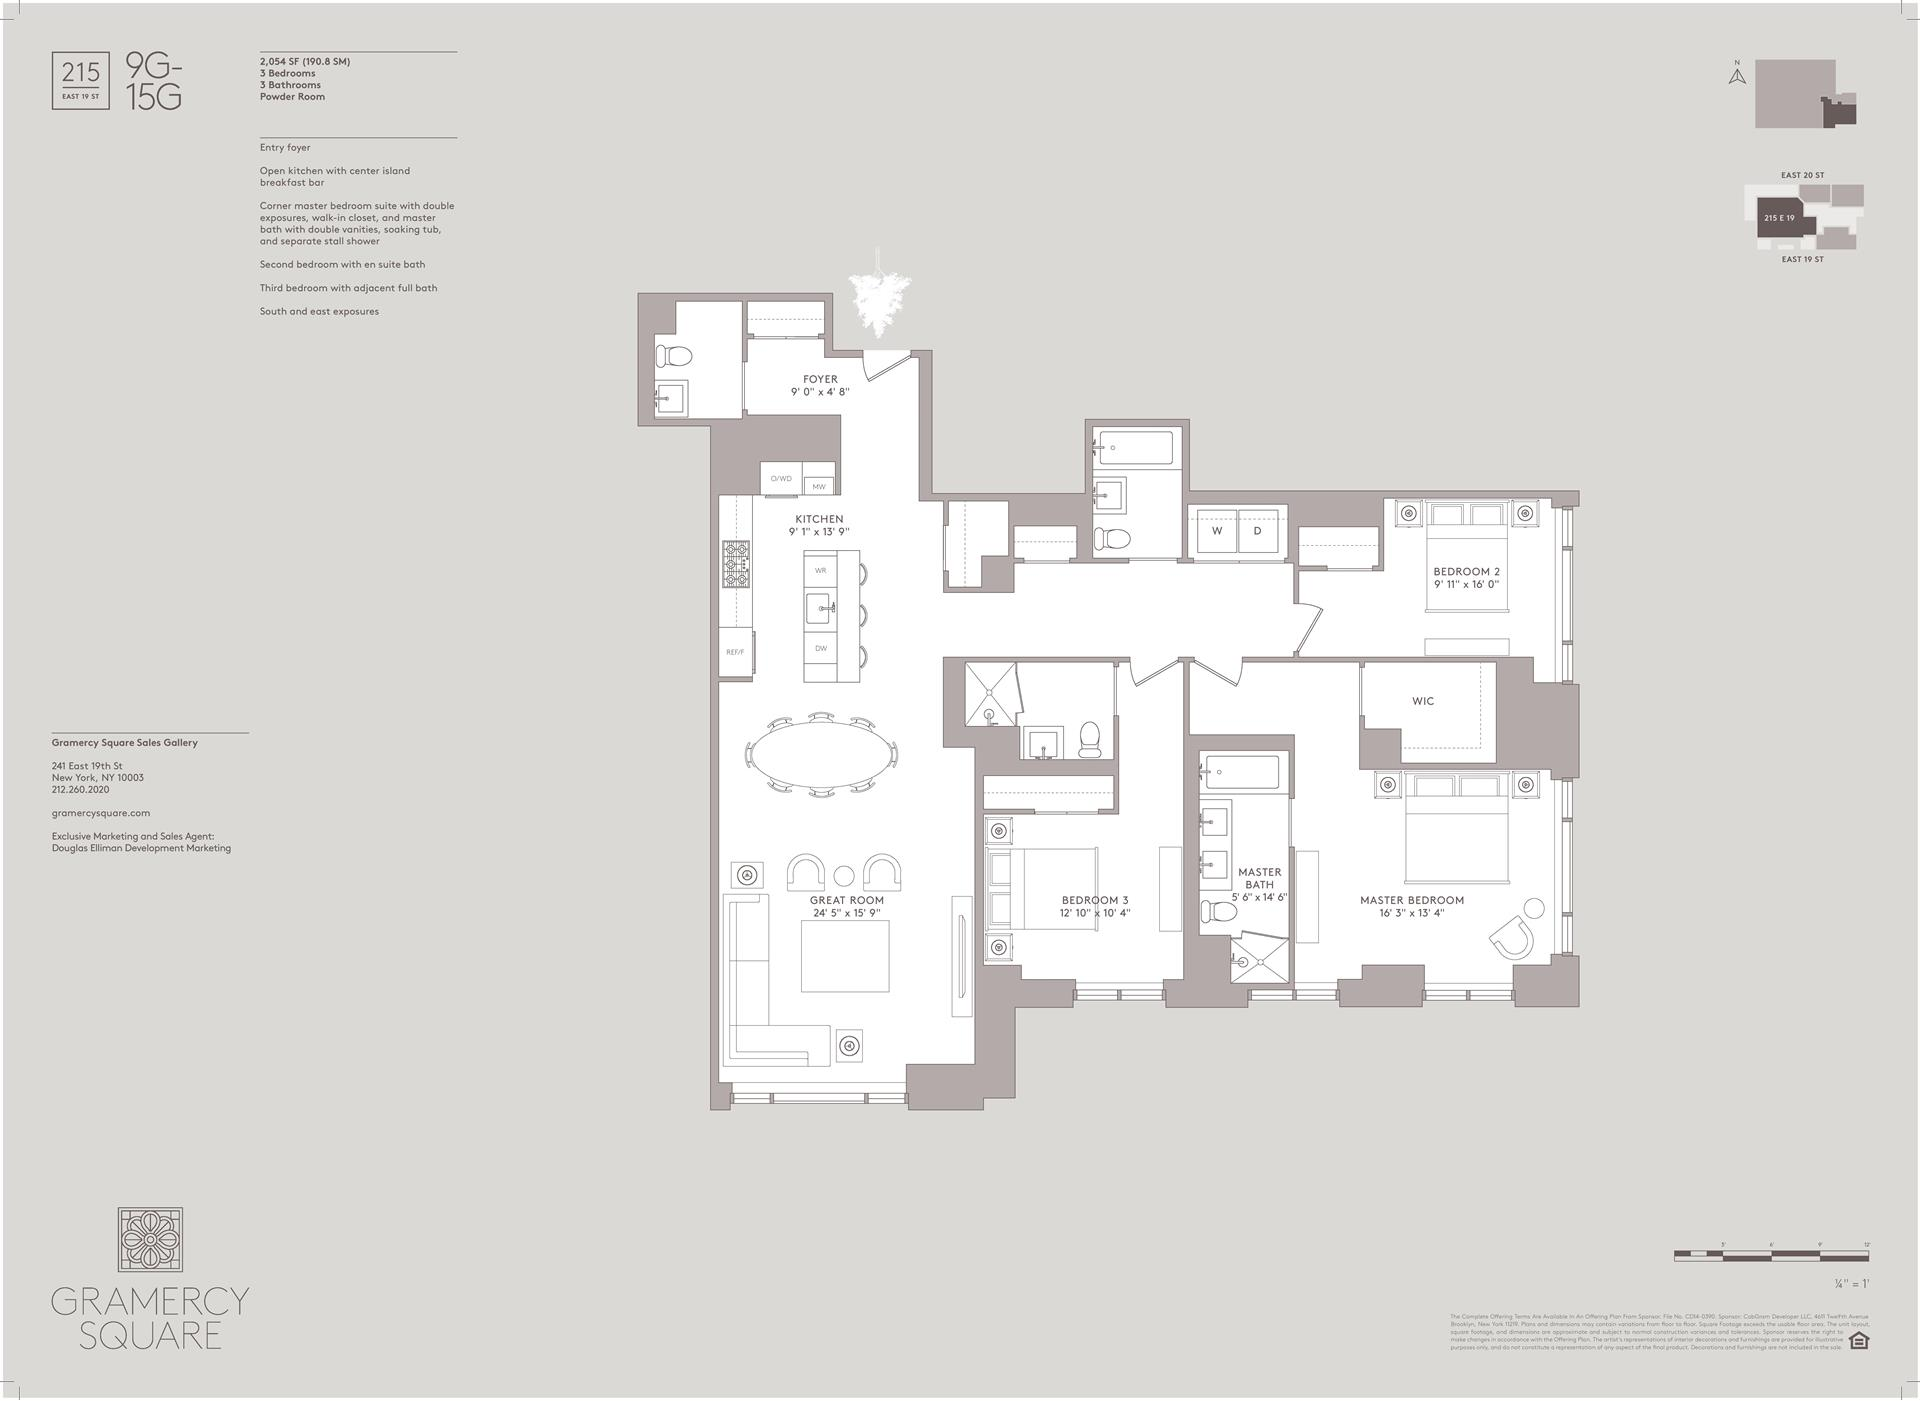 Floor plan of Gramercy Square, 215 East 19th St, 11G - Gramercy - Union Square, New York